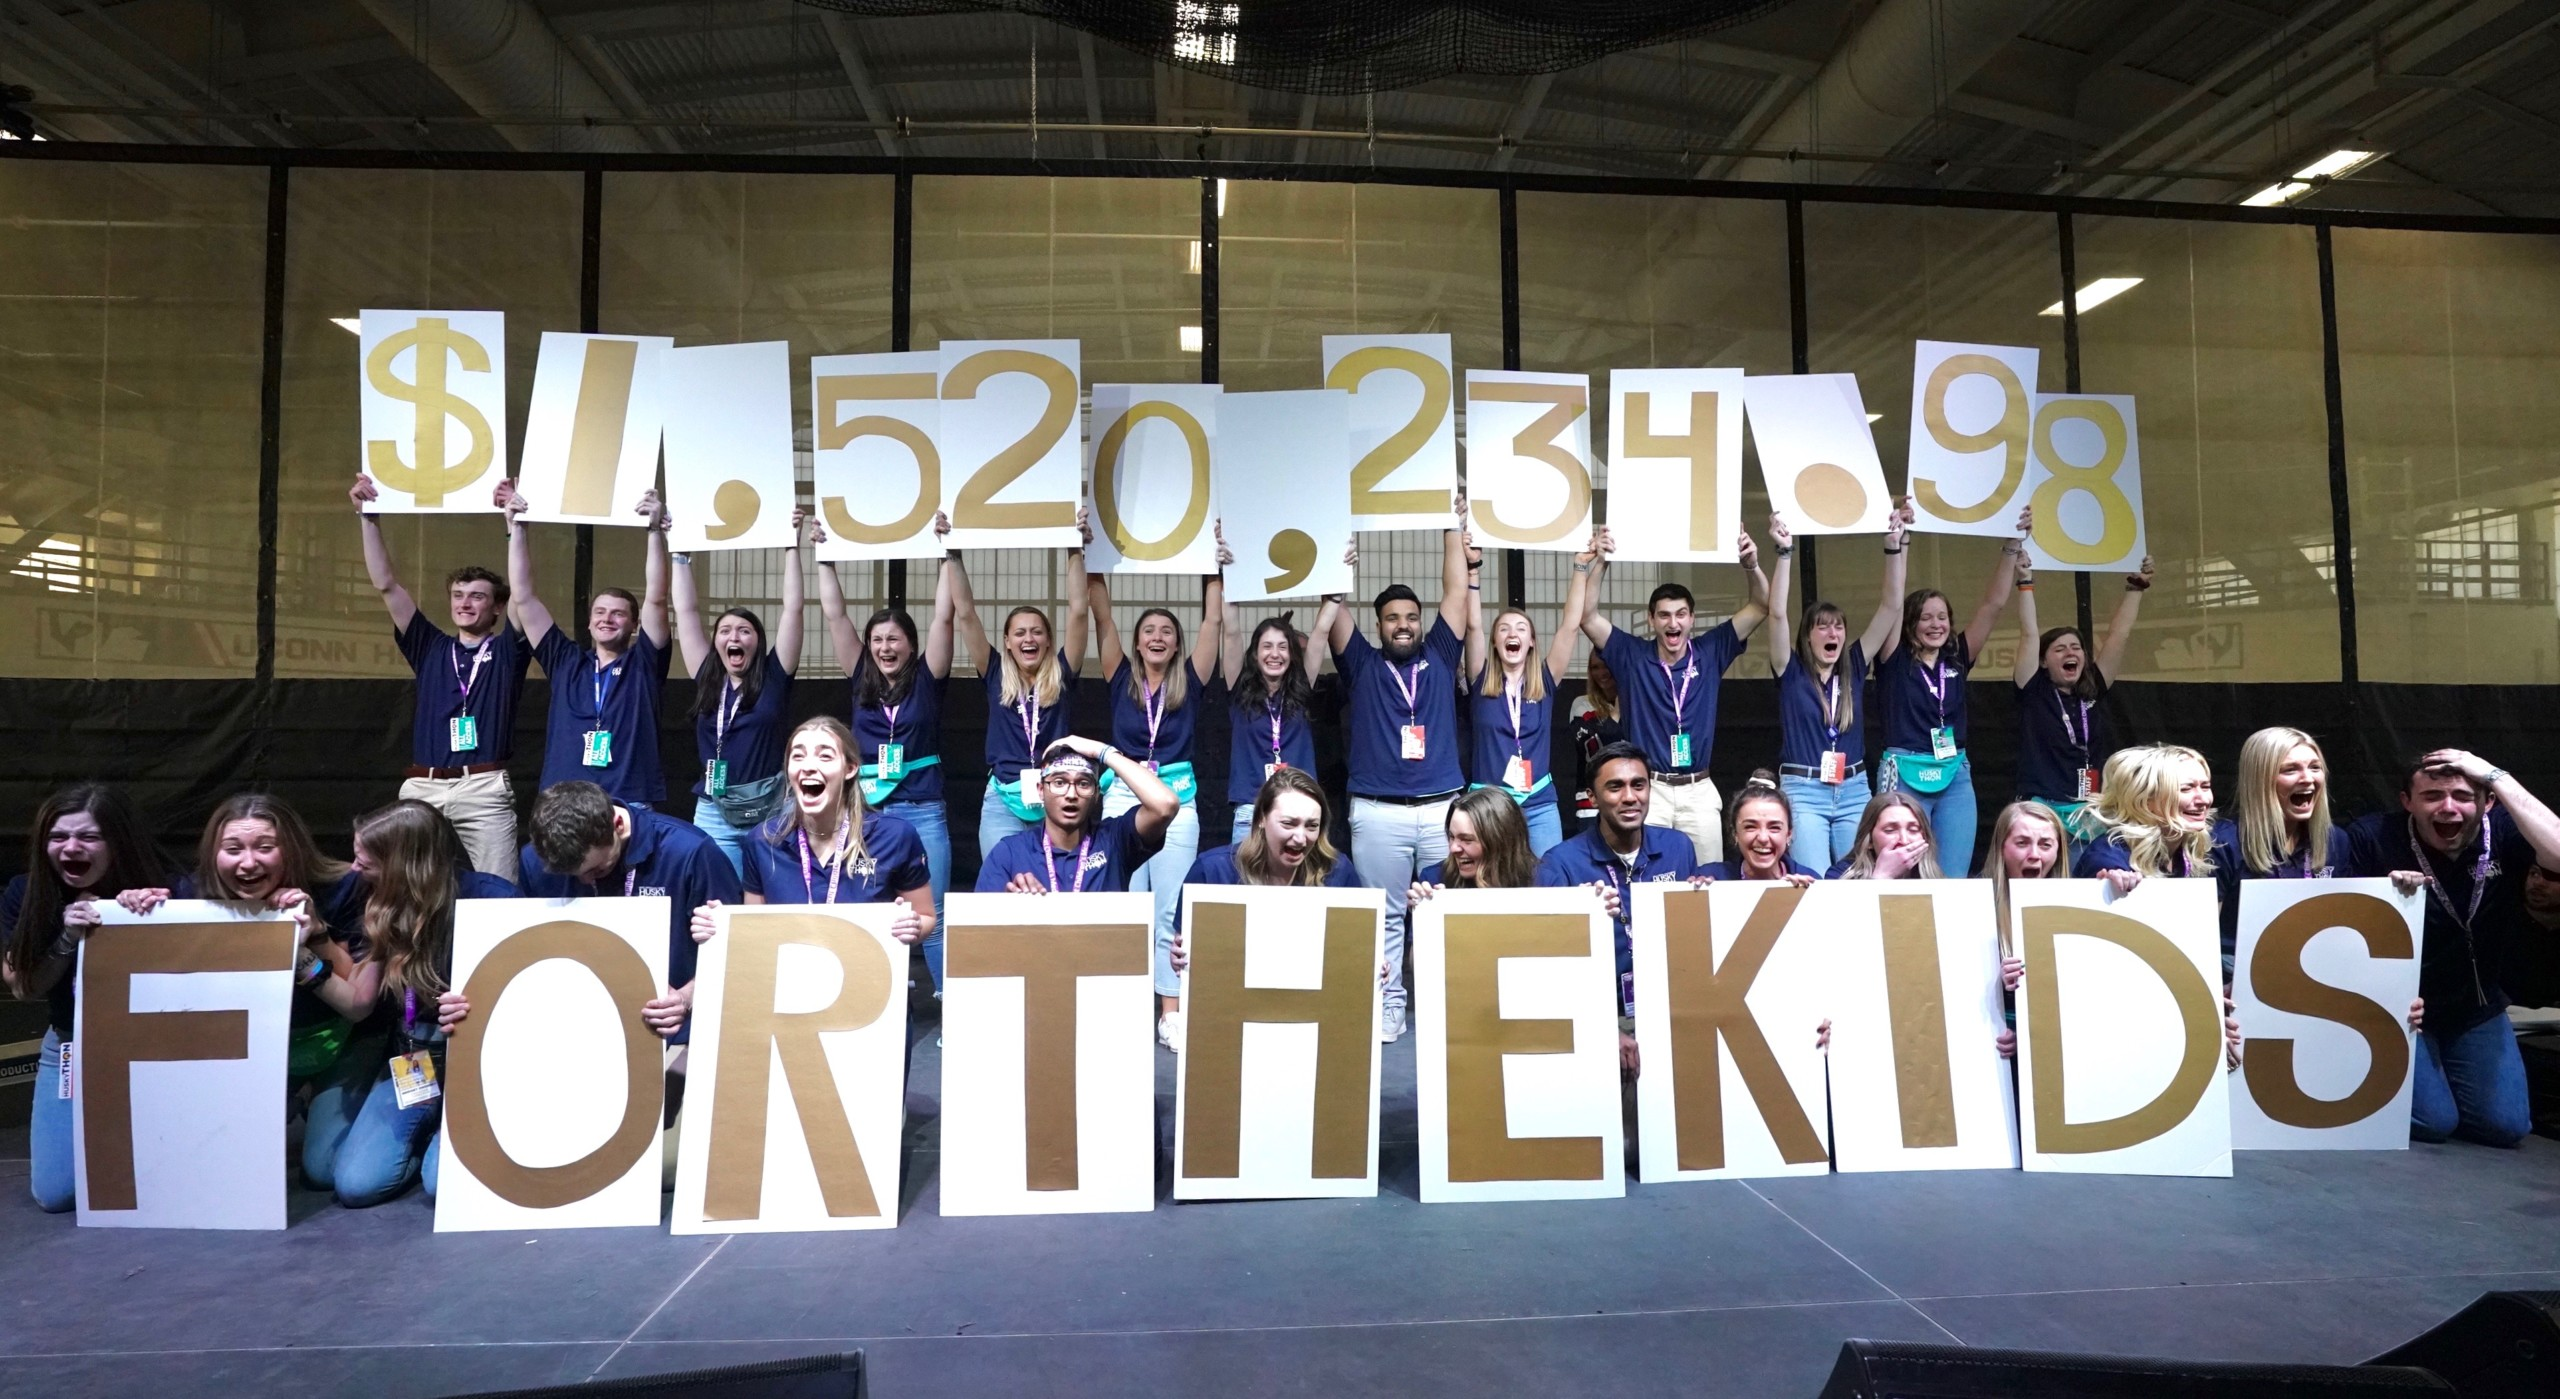 UConn Students Dance Their Way to $1.52 Million for Connecticut Children's Through 21st Annual HuskyTHON